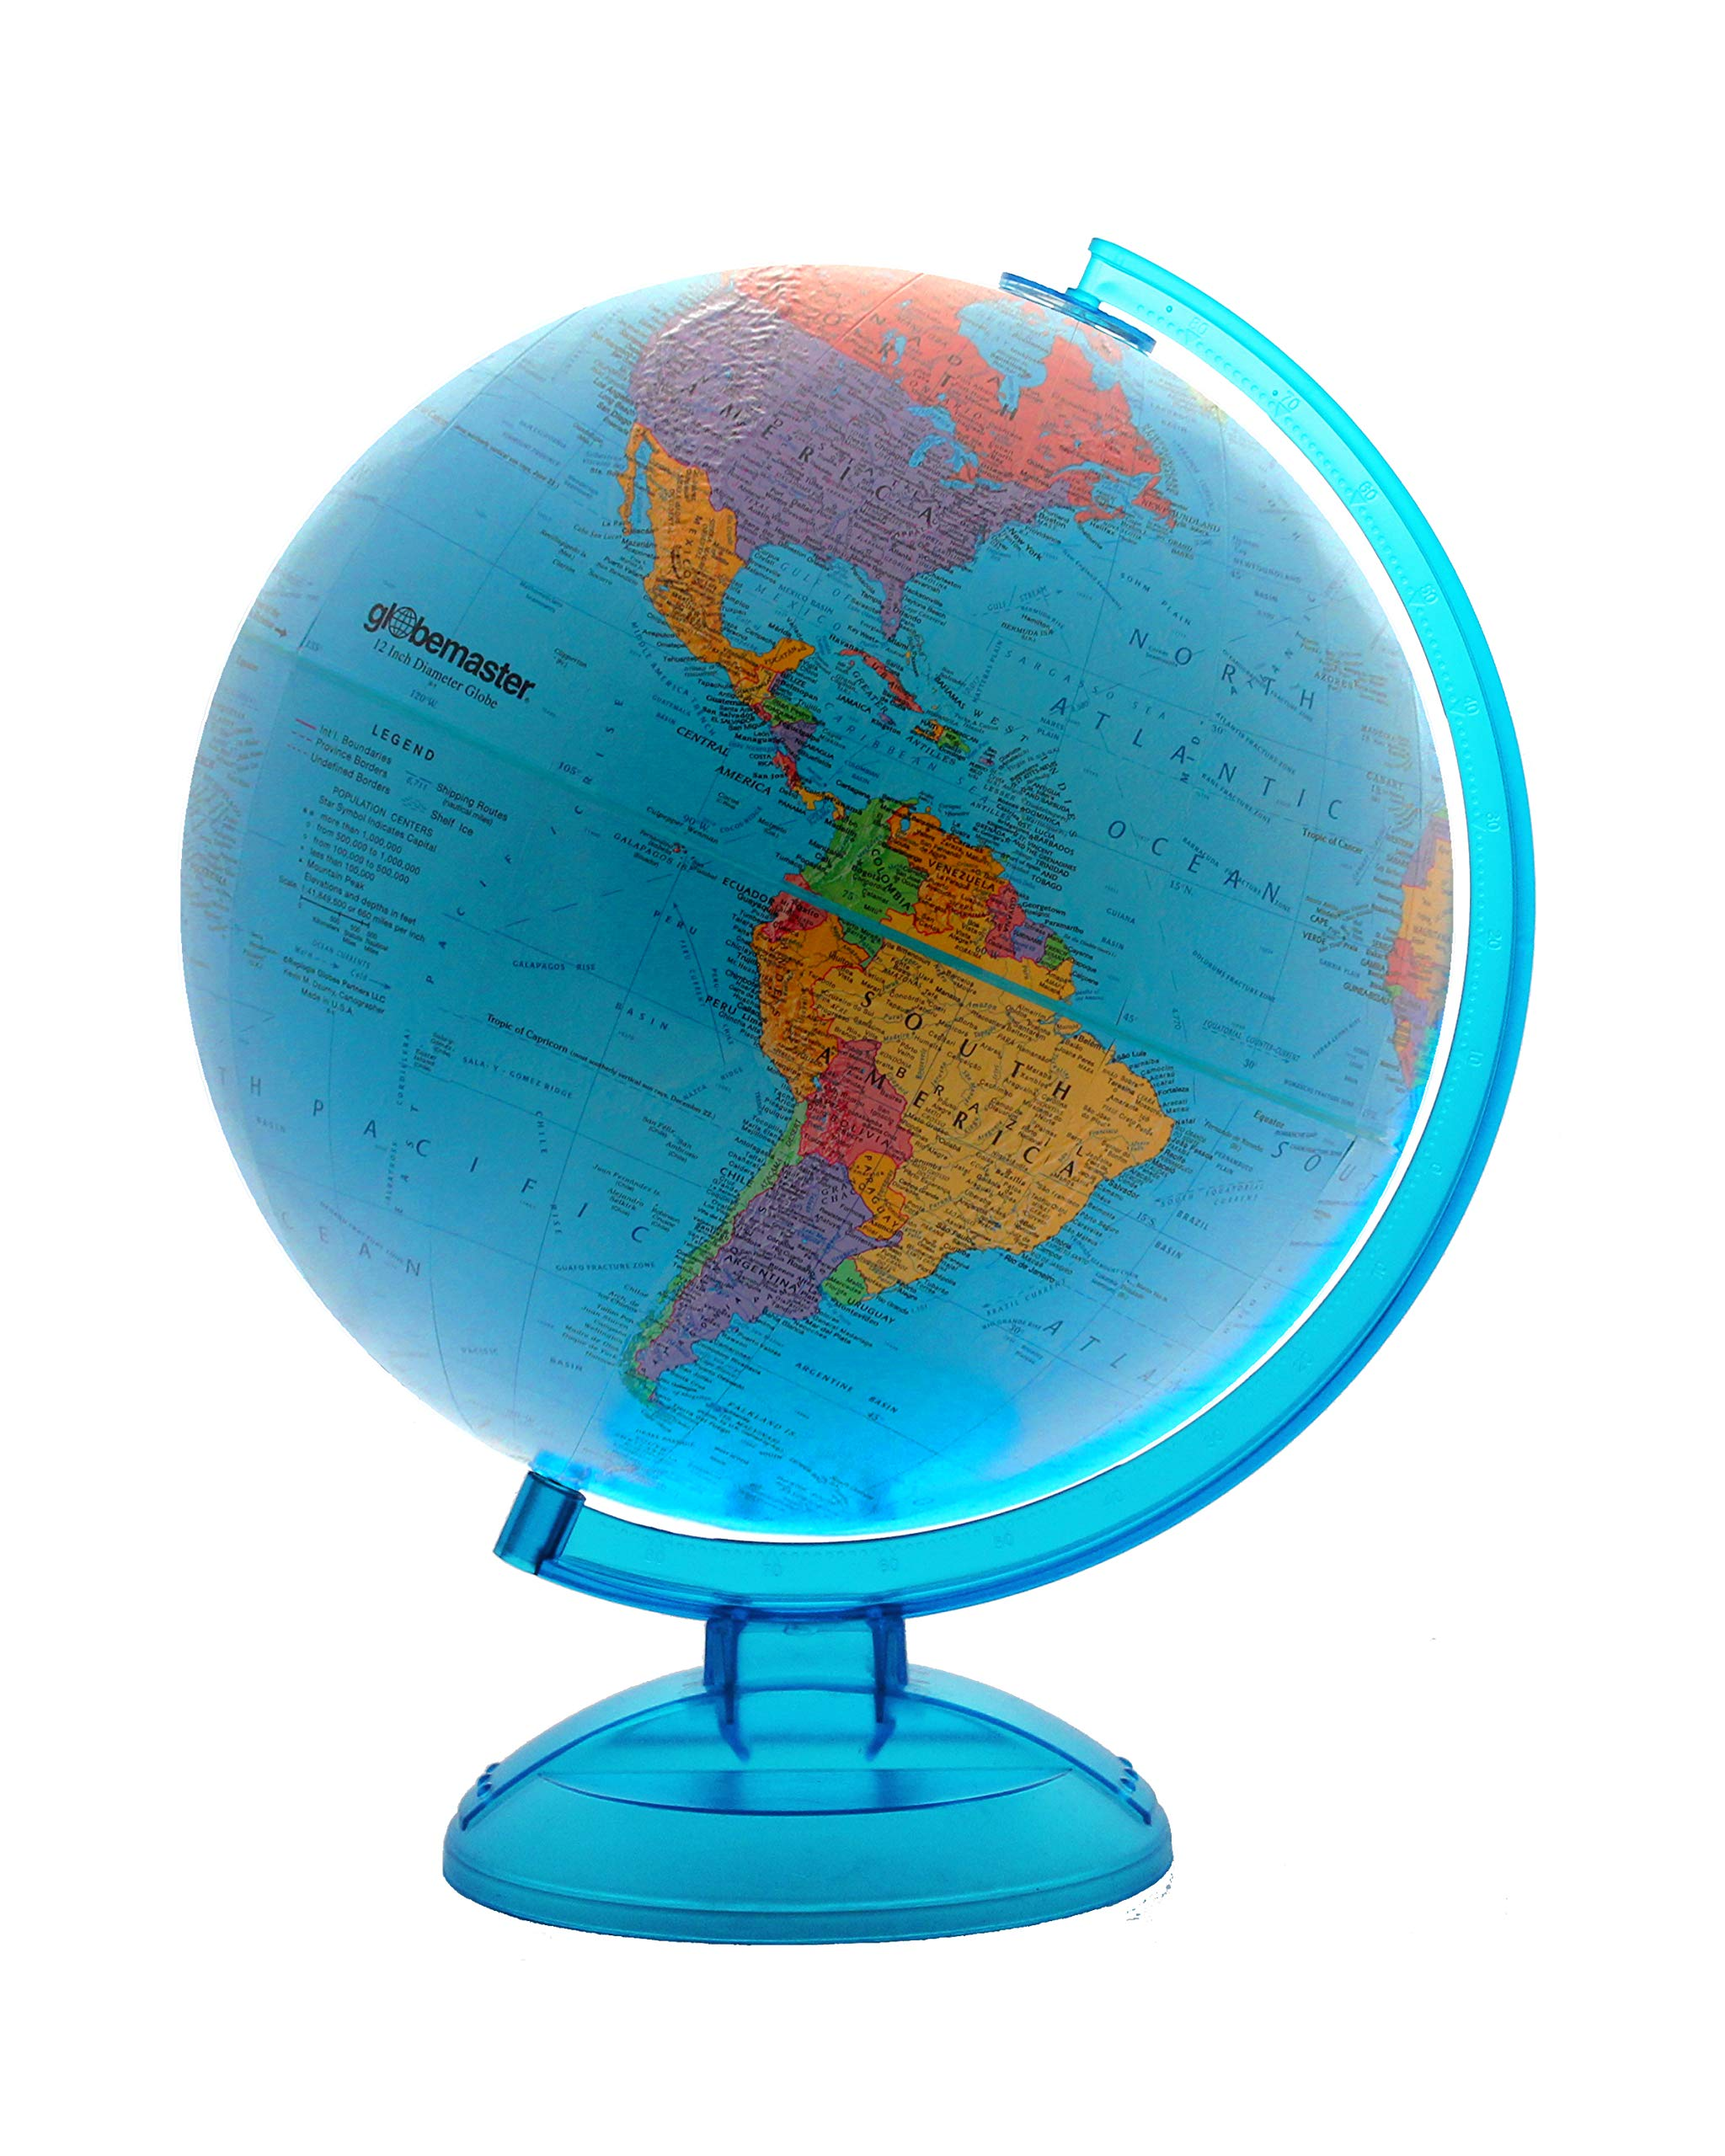 Blue Ocean World Globe By Globemaster, Desktop, English (12''/30 Centimeter Diameter)